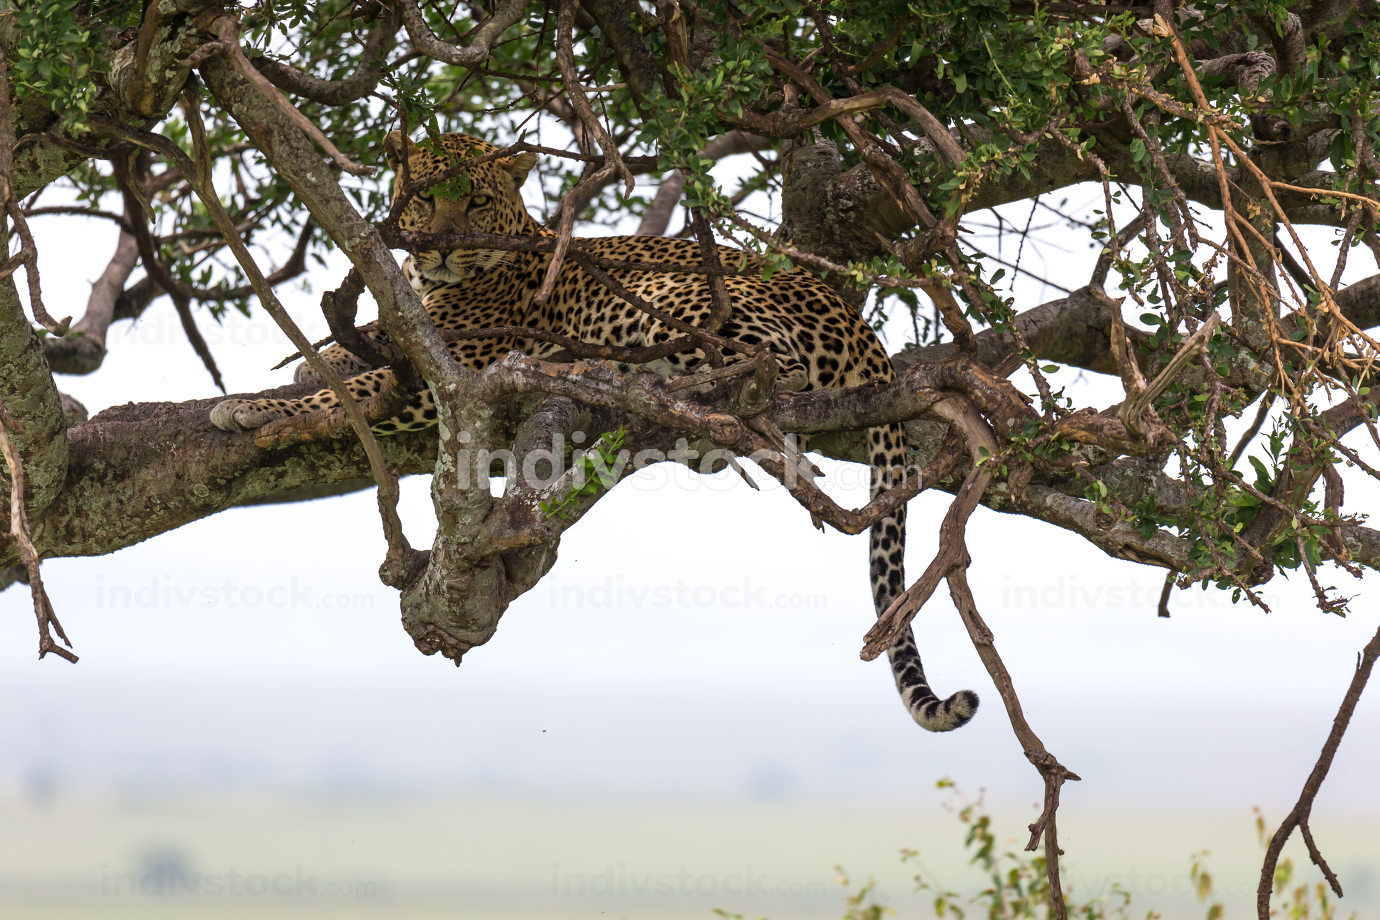 One leopard has settled comfortably between the branches of a tree to rest